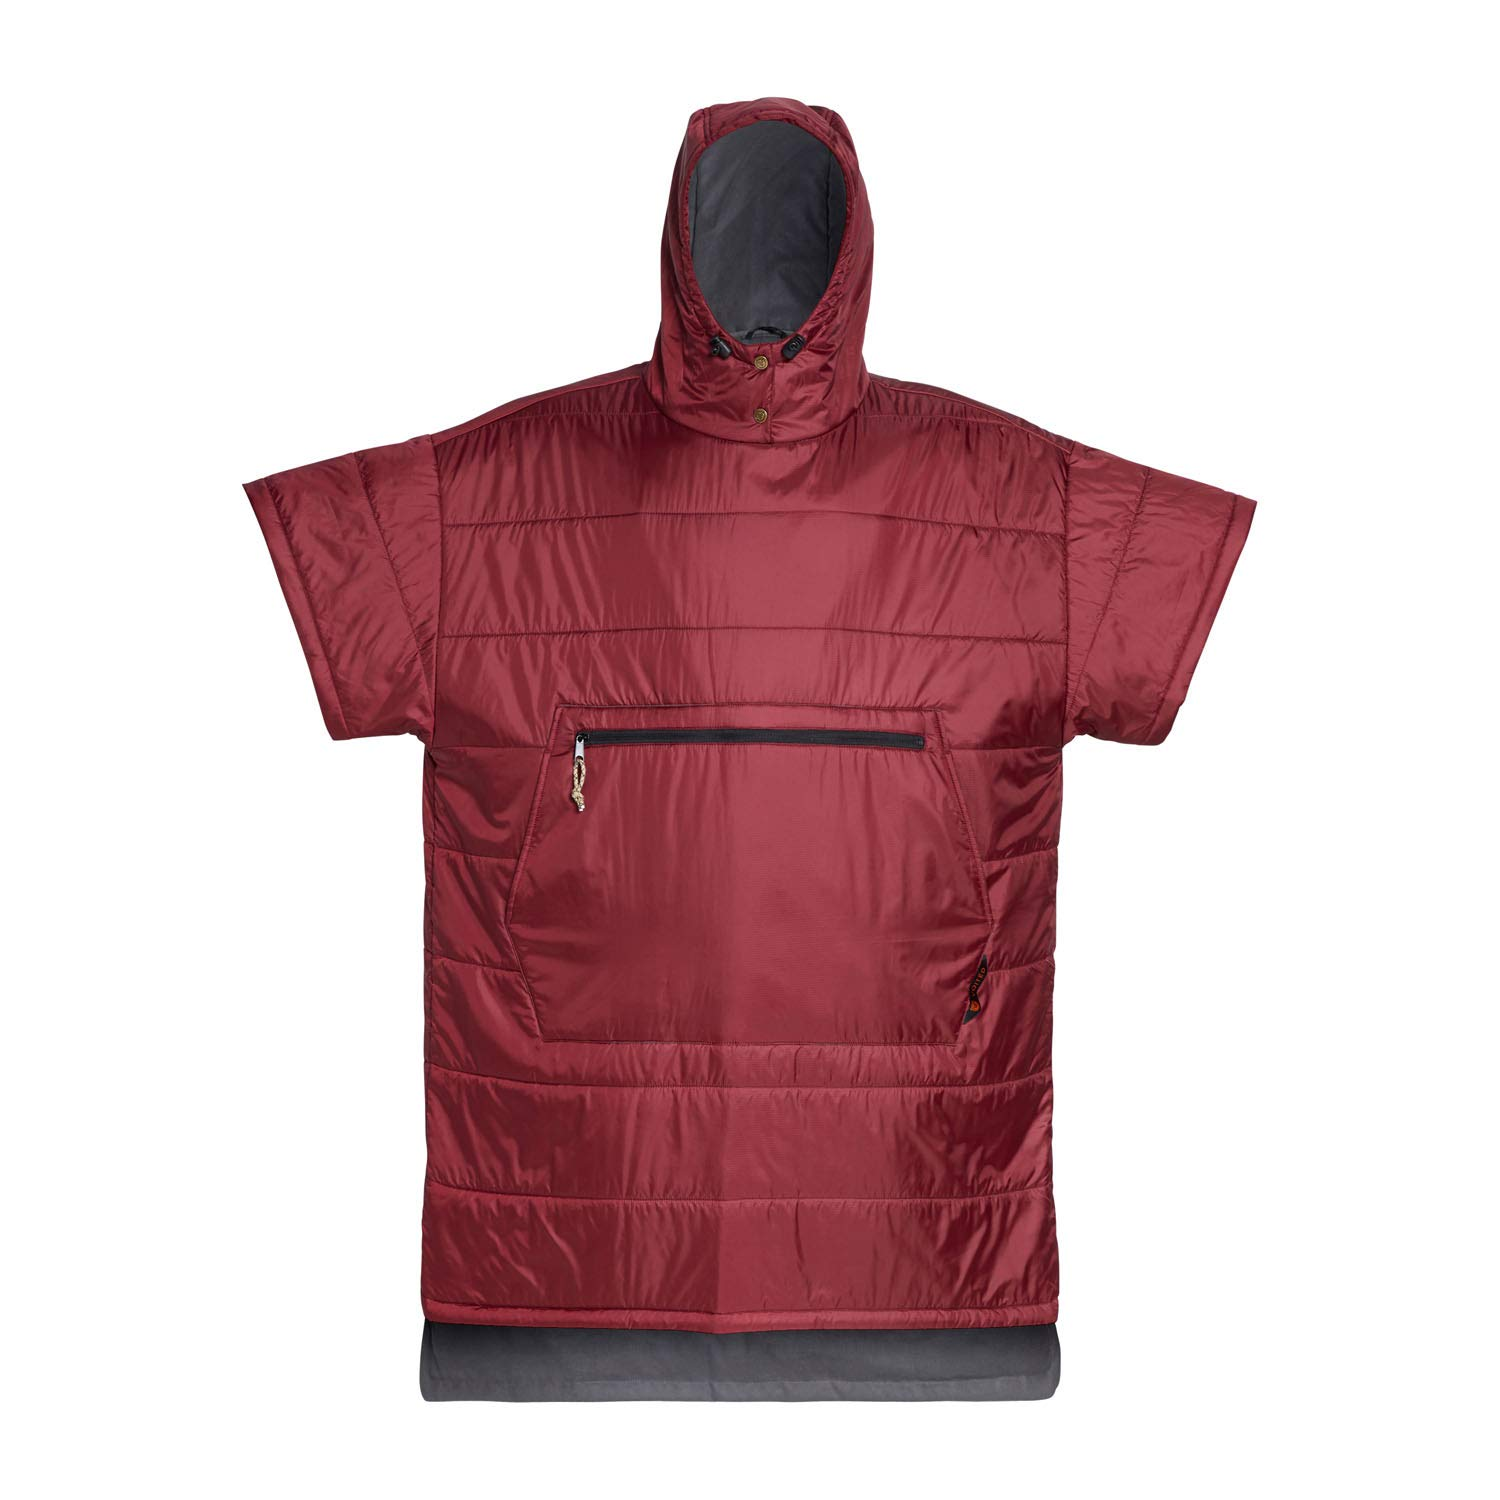 VOITED Surf Poncho (Wetsuit Change Robe) - Absorbent Microfiber Towel on The Inside, Water-Resistant Ripstop on The Outside - Stay Warm and Dry Before and After Surfing (Oxblood, S/M) by VOITED